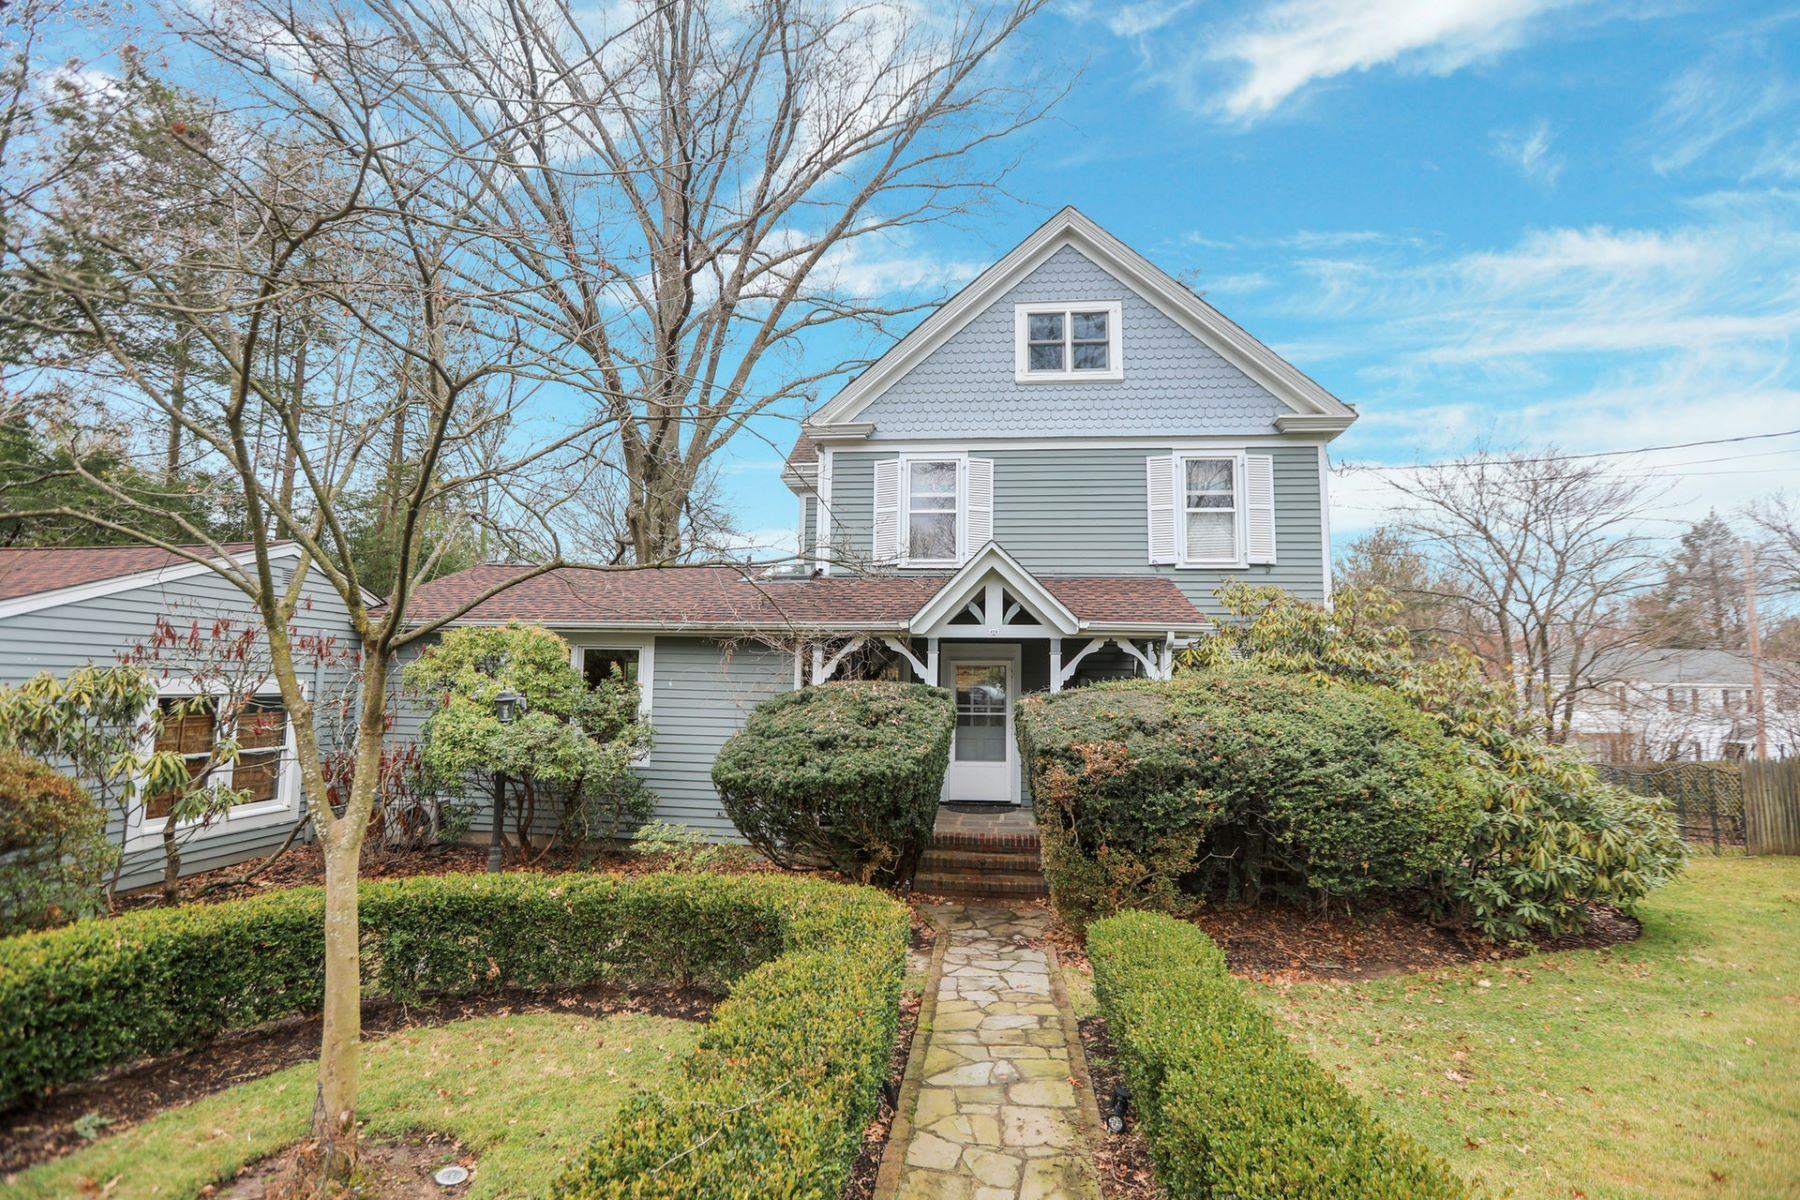 Single Family Homes for Sale at Wonderful Victorian 173 Serpentine Rd Tenafly, New Jersey 07670 United States